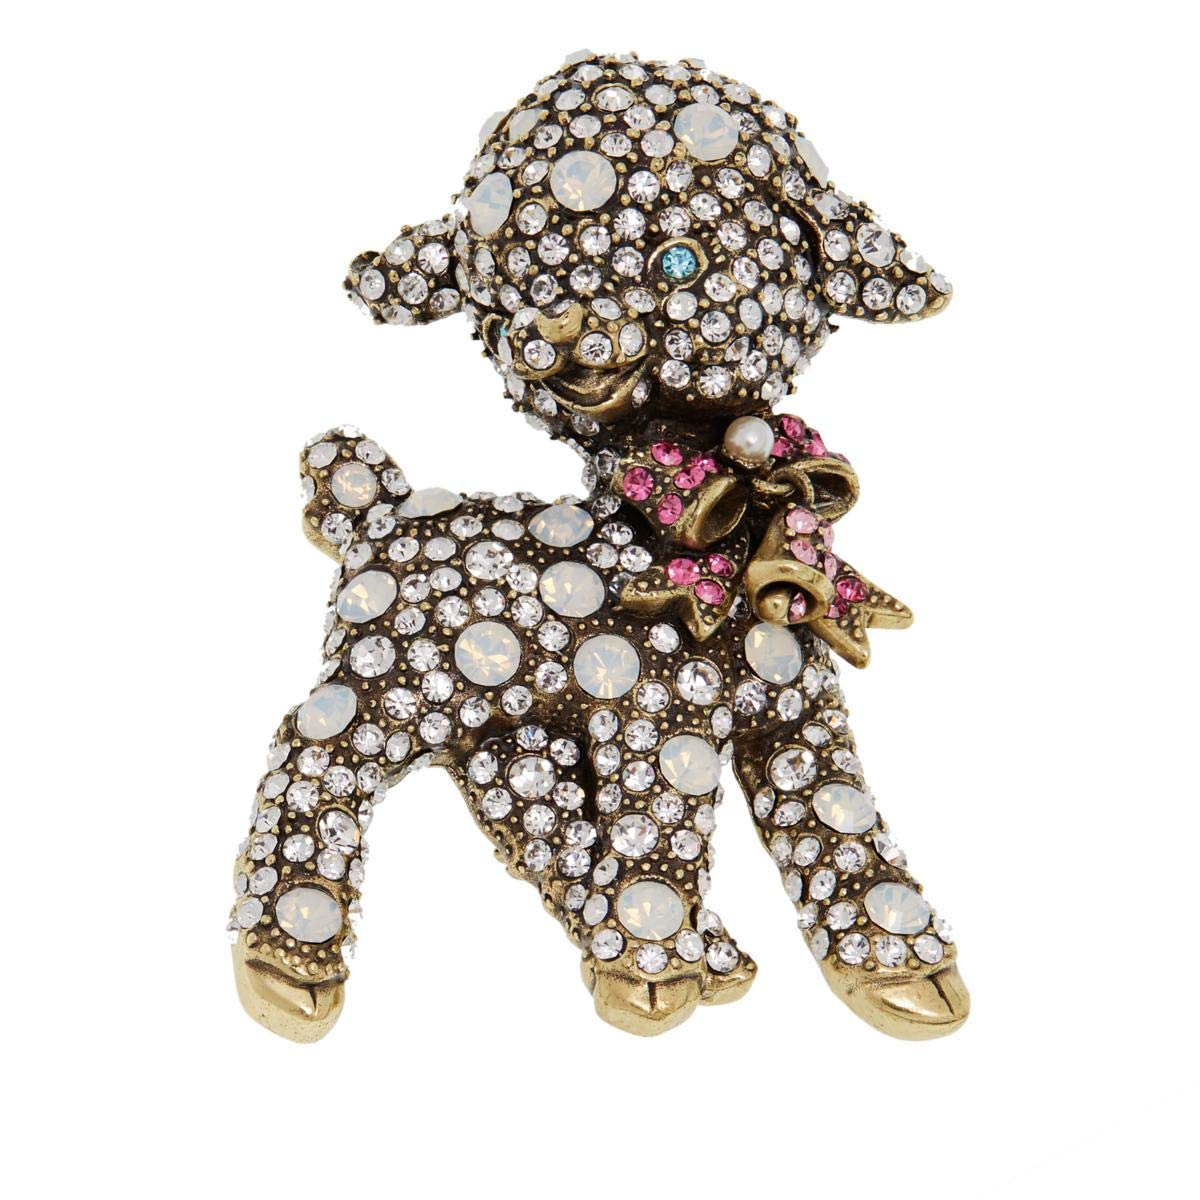 Heidi Daus Mairzy Doats Pavé Crystal Cutest Little Thing You'll See, Grab IT!!! by Heidi Daus (Image #1)